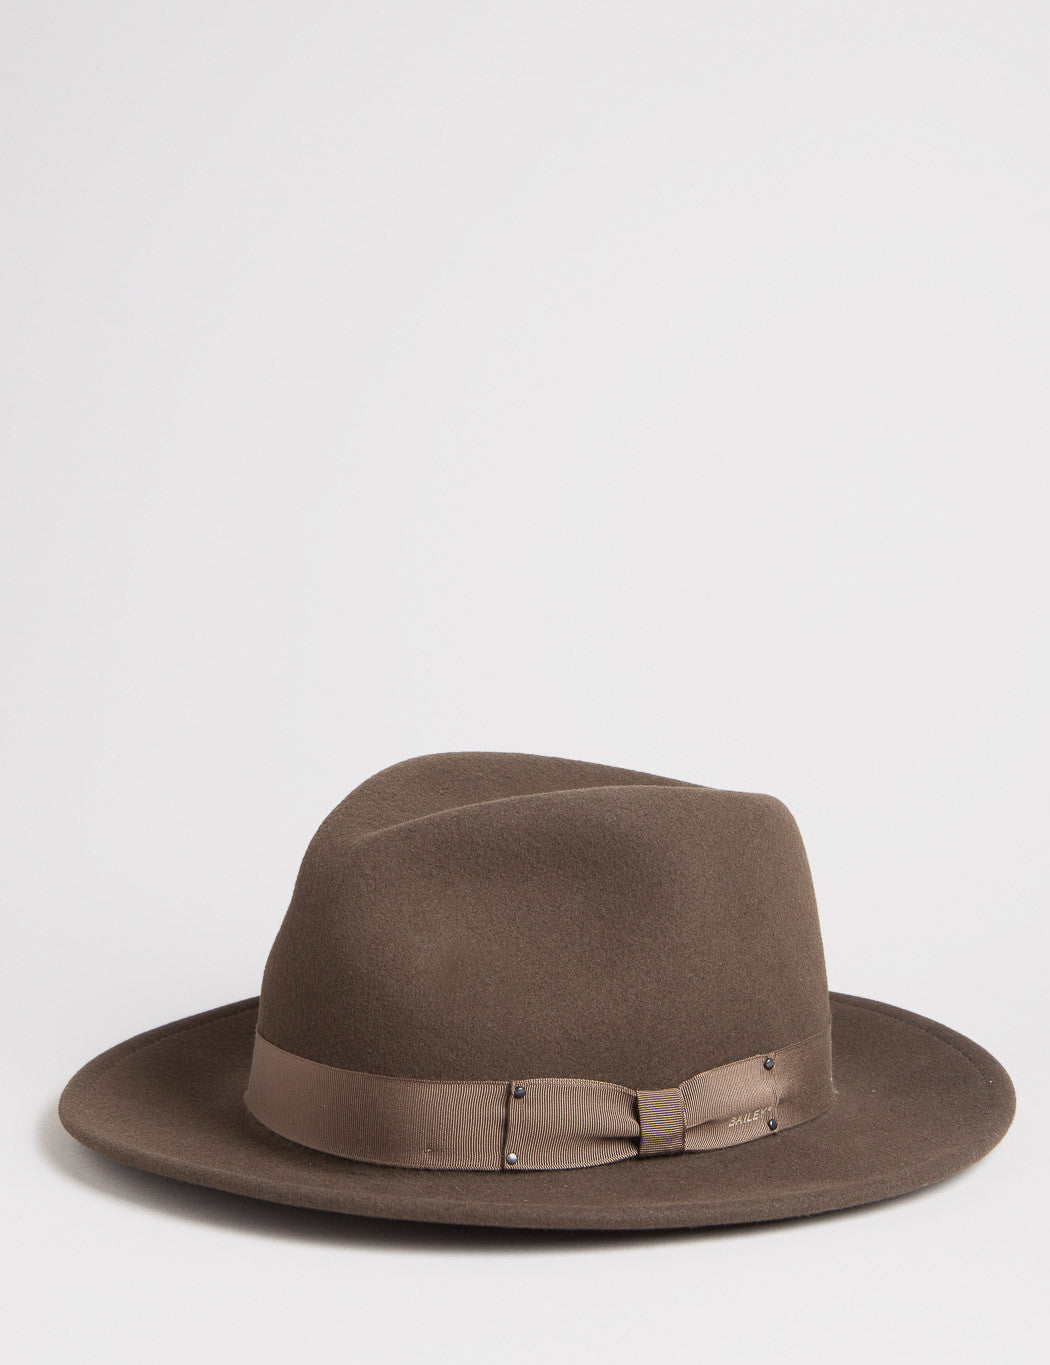 cd6aa02d Bailey Curtis Widebrim Fedora Hat - Serpent Brown – URBAN EXCESS